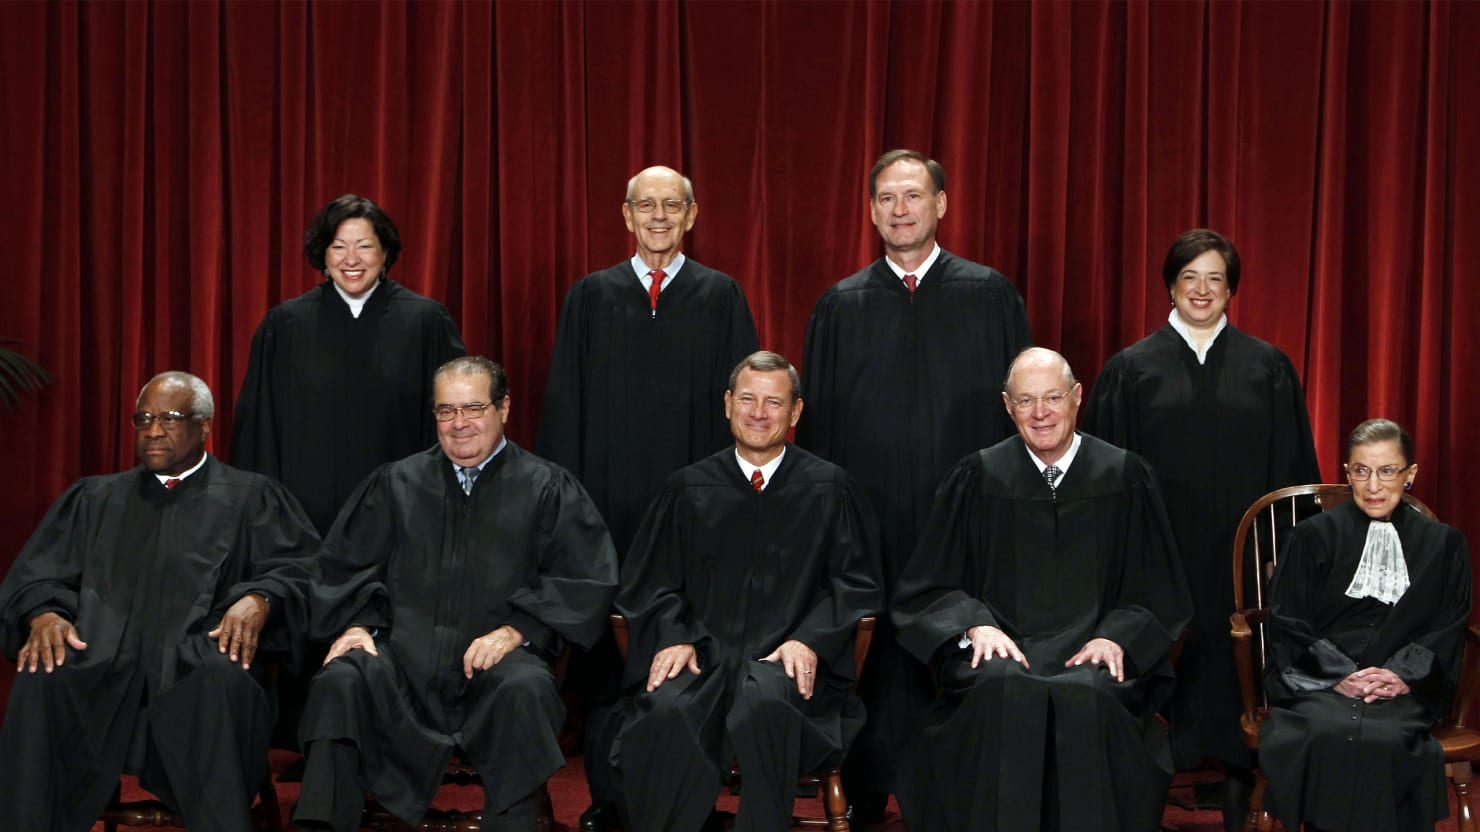 This Could Be the Supreme Court's Busiest Month in History